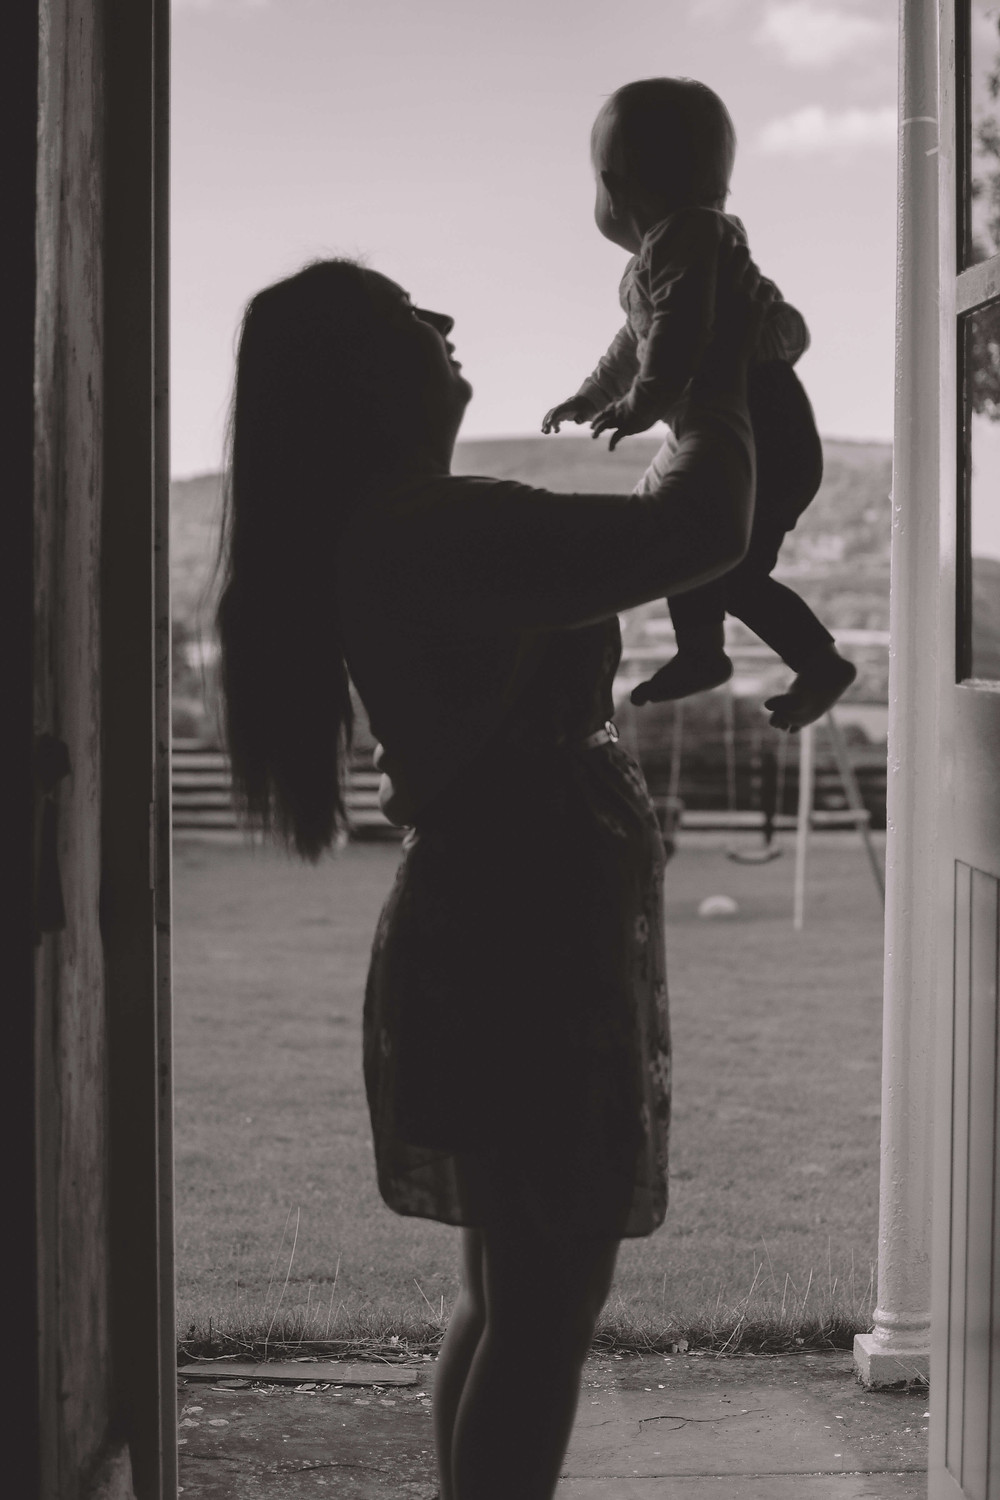 mother and younger daughter play in doorway